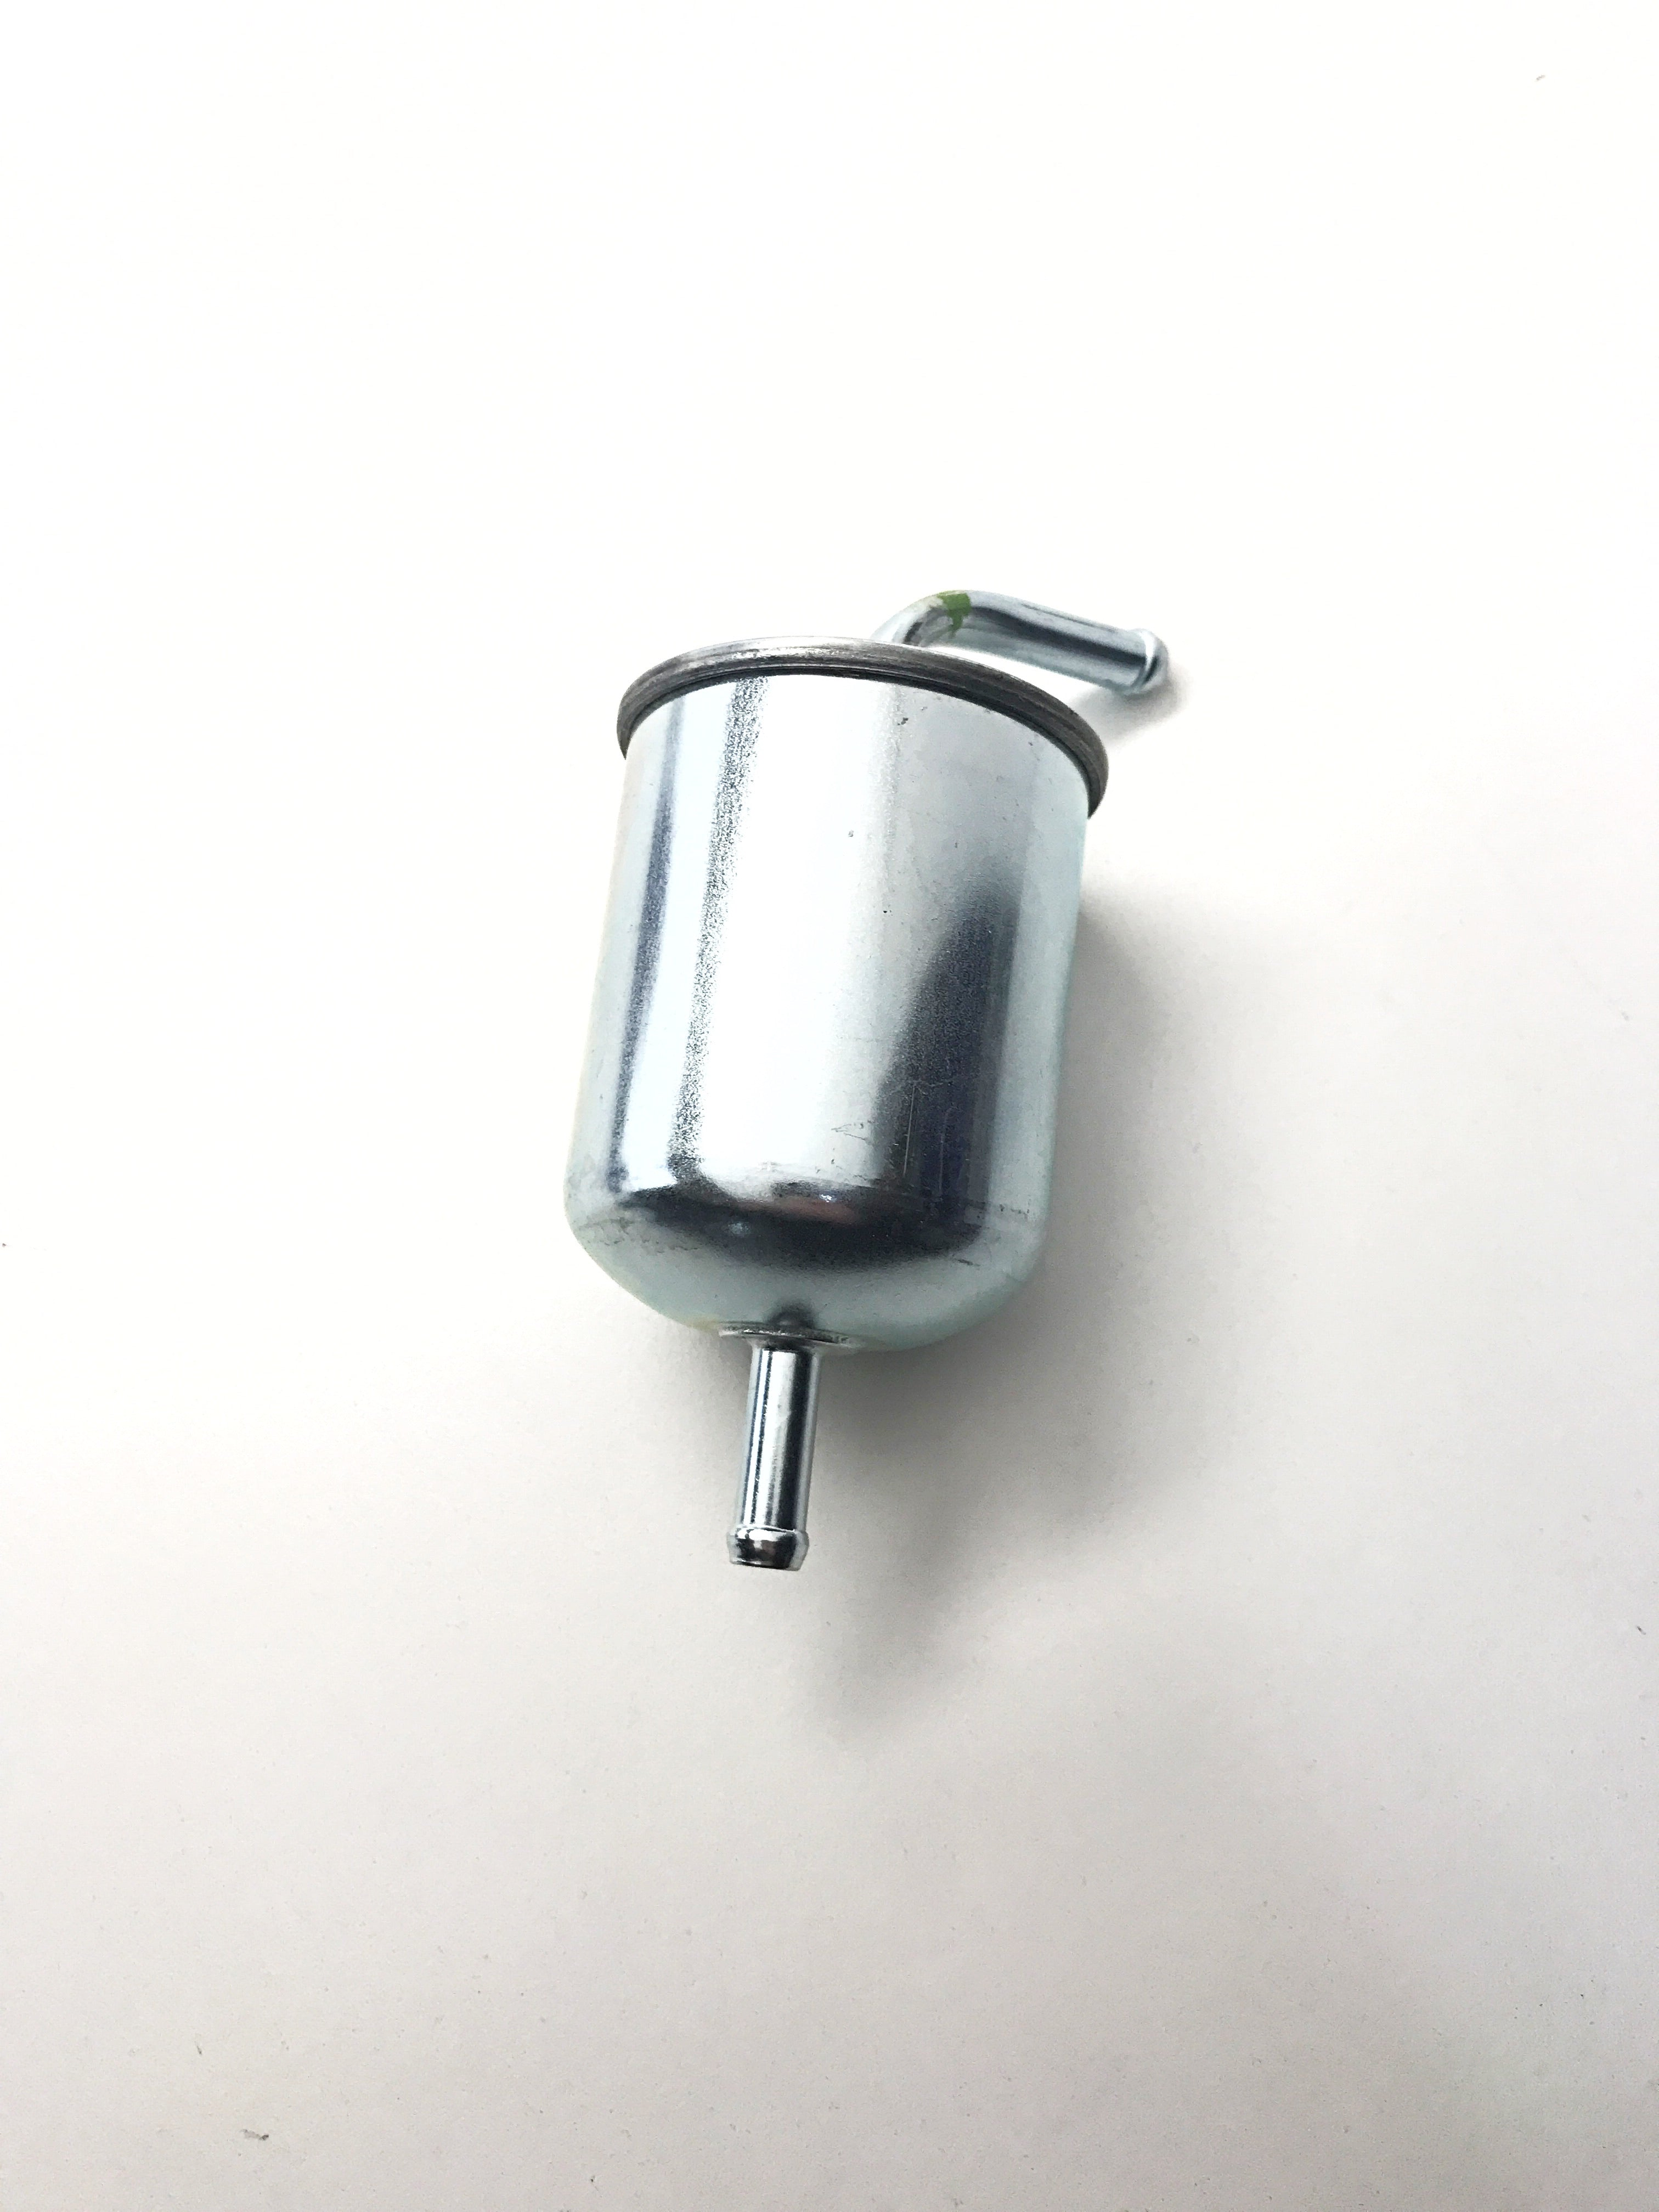 UPG DR Fuel filter R32 Skyline